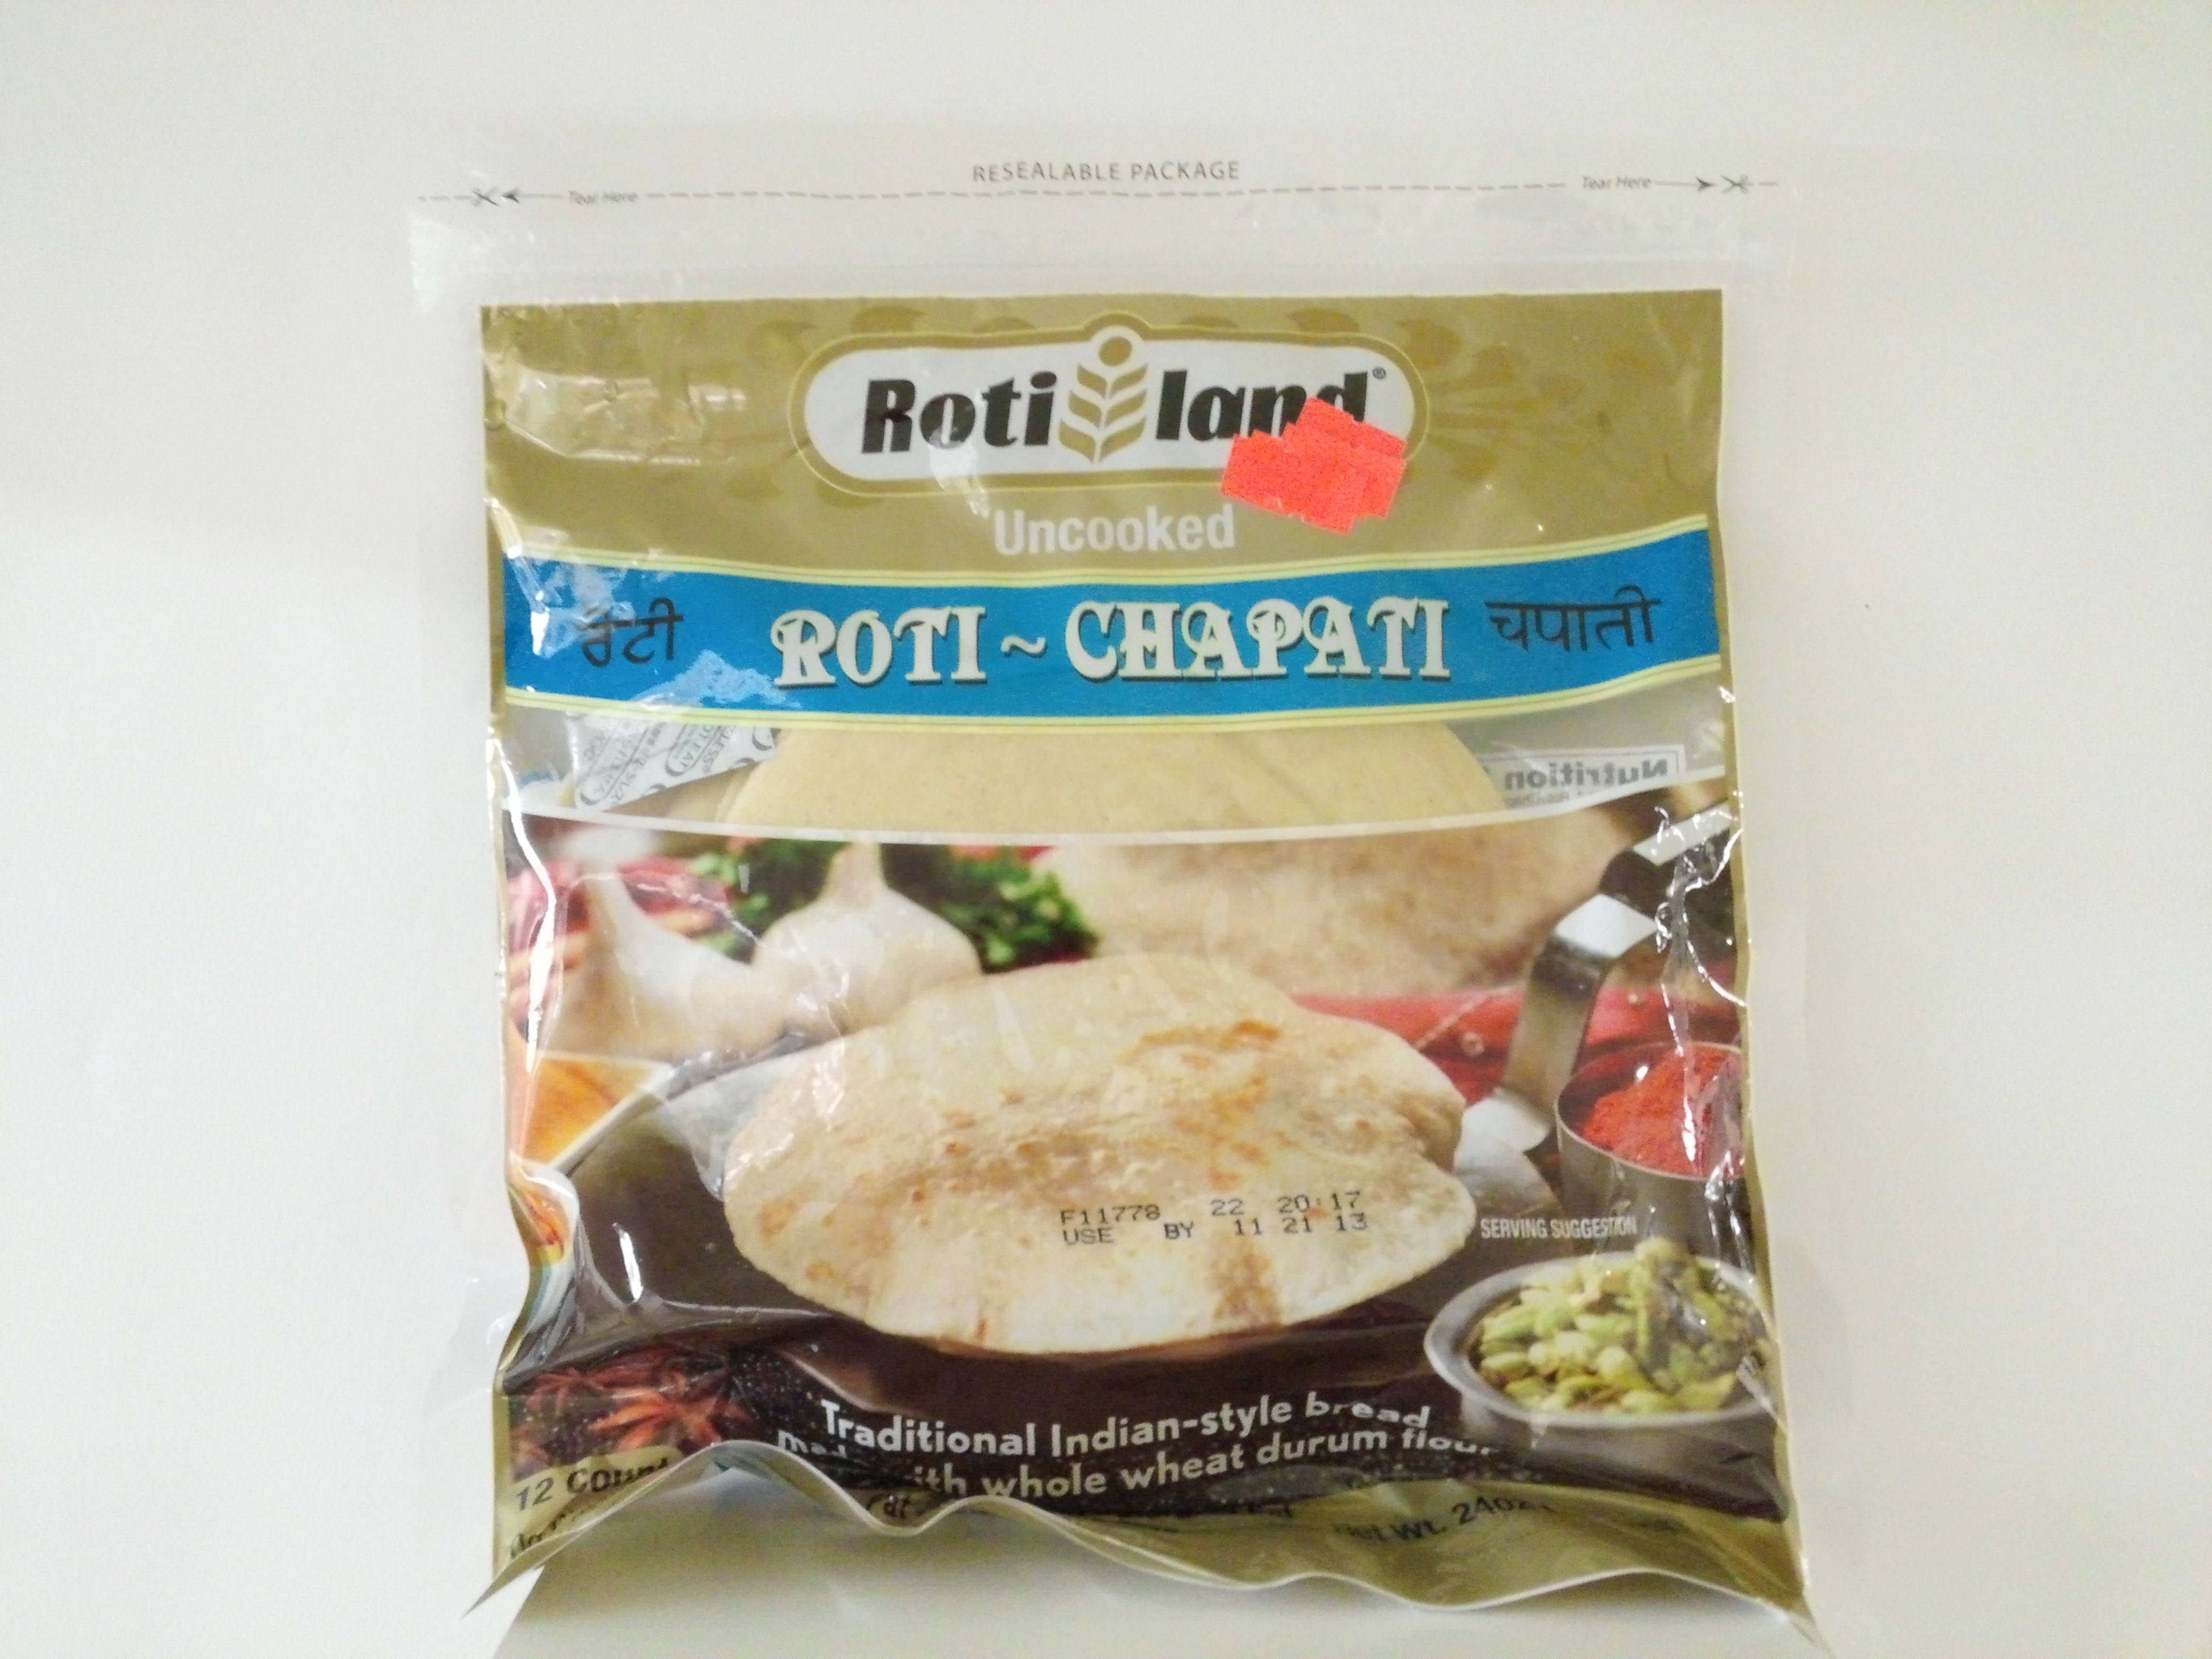 Rotil Fresh Uncooked Roti 36 pcs 72 oz